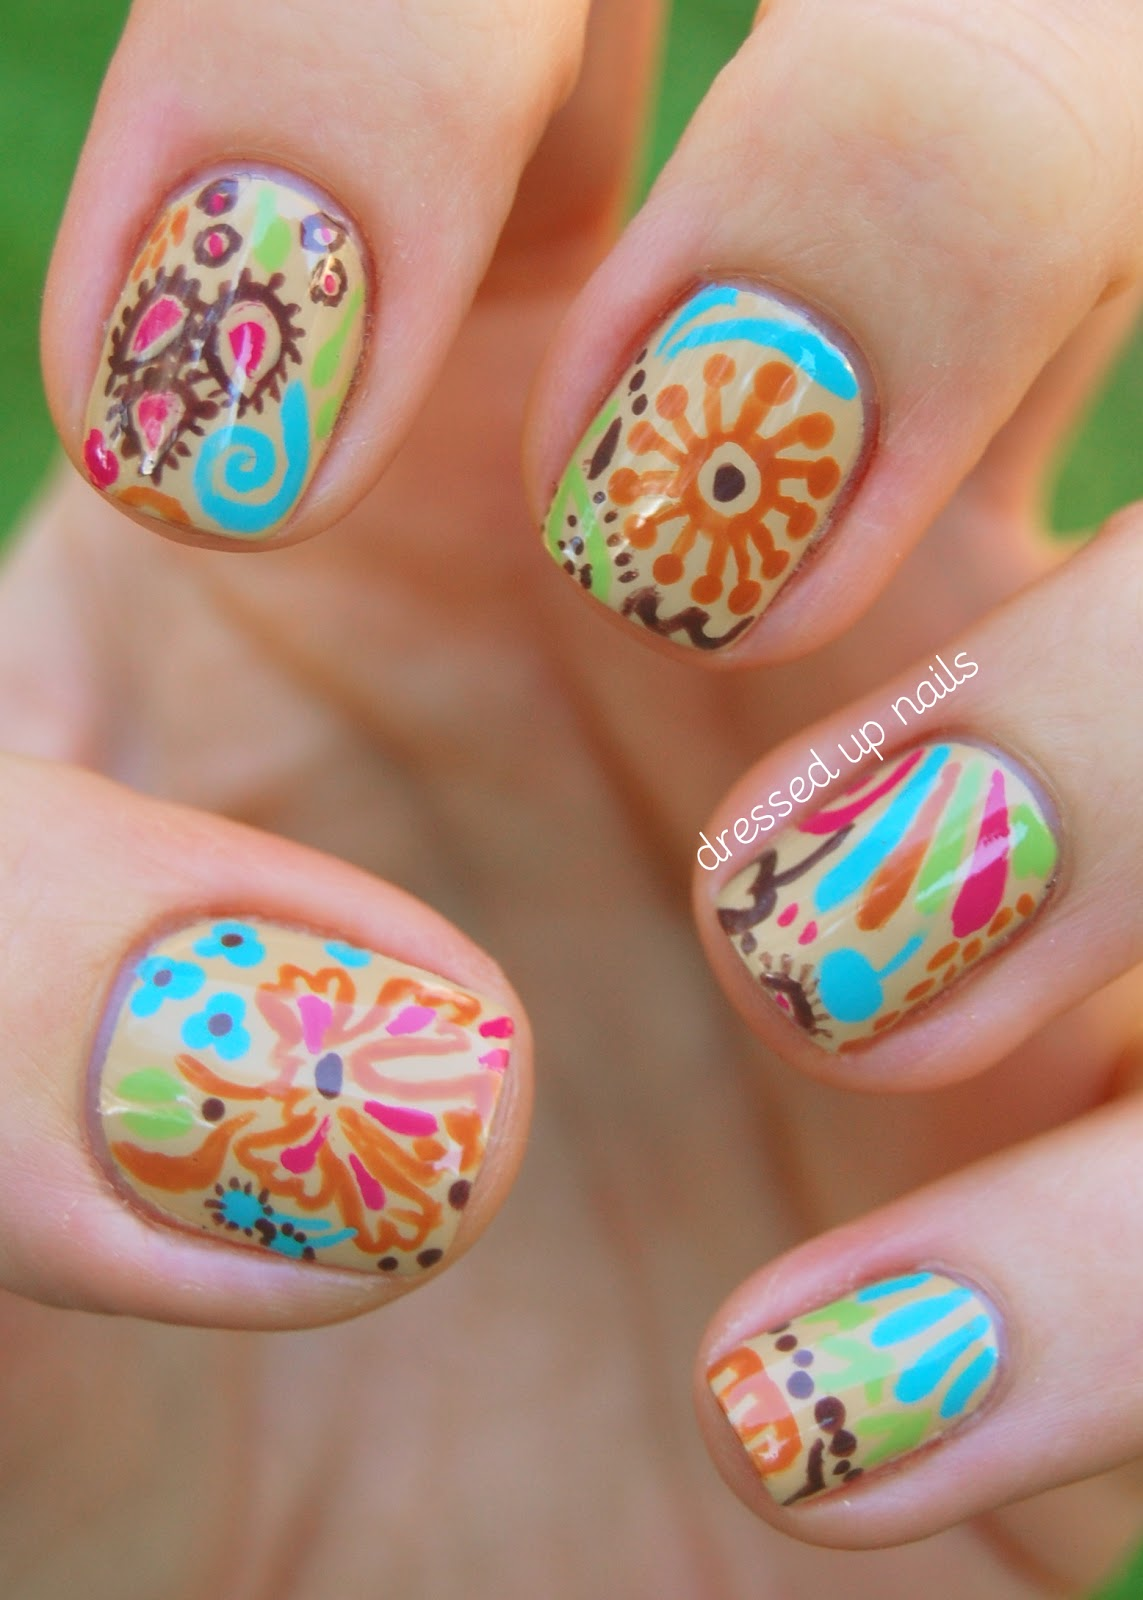 Nail Art Designs And Nail Polishes For French Manicure: NailArt 101: Nail Art Stamp